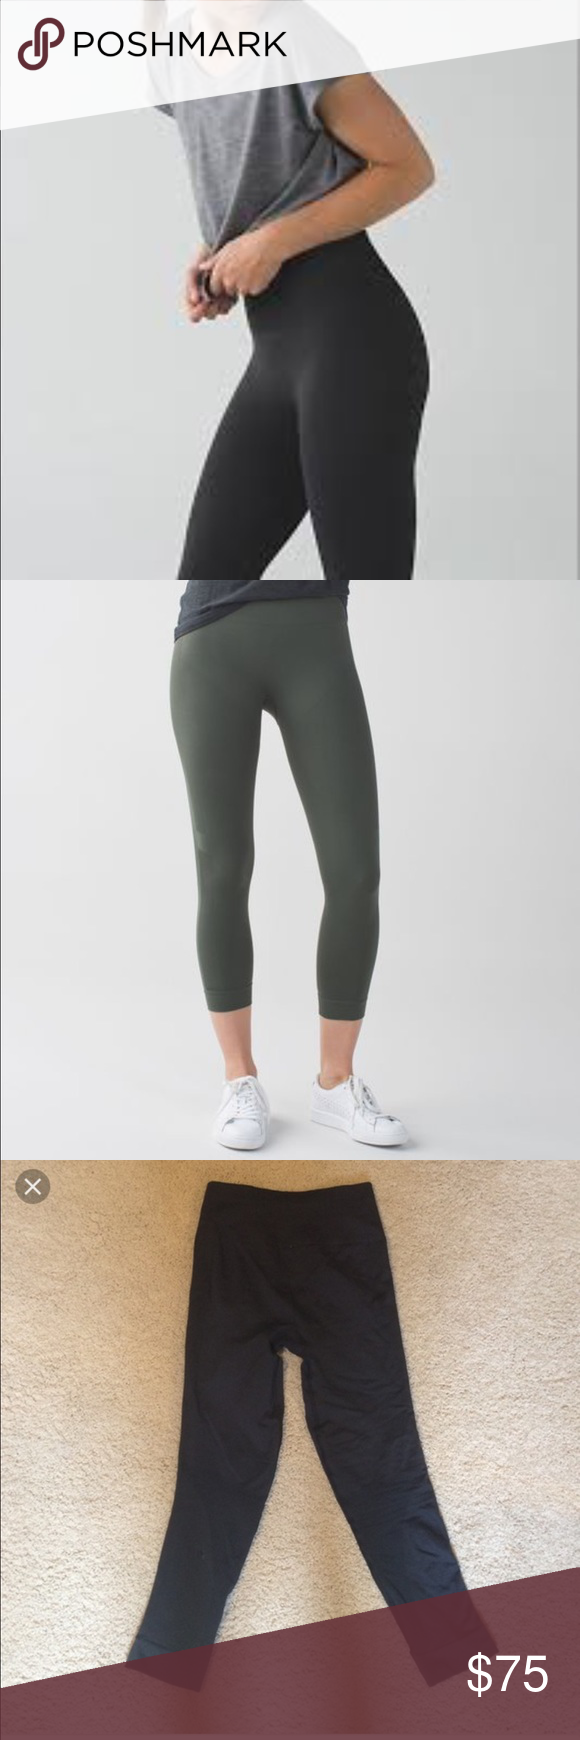 4af9b4c3e9e40d Lululemon high waisted zone in crop Used a few times/ high waited dark grey  zone in crop leggings / size 4/ no tag on the inside / fit great lululemon  ...